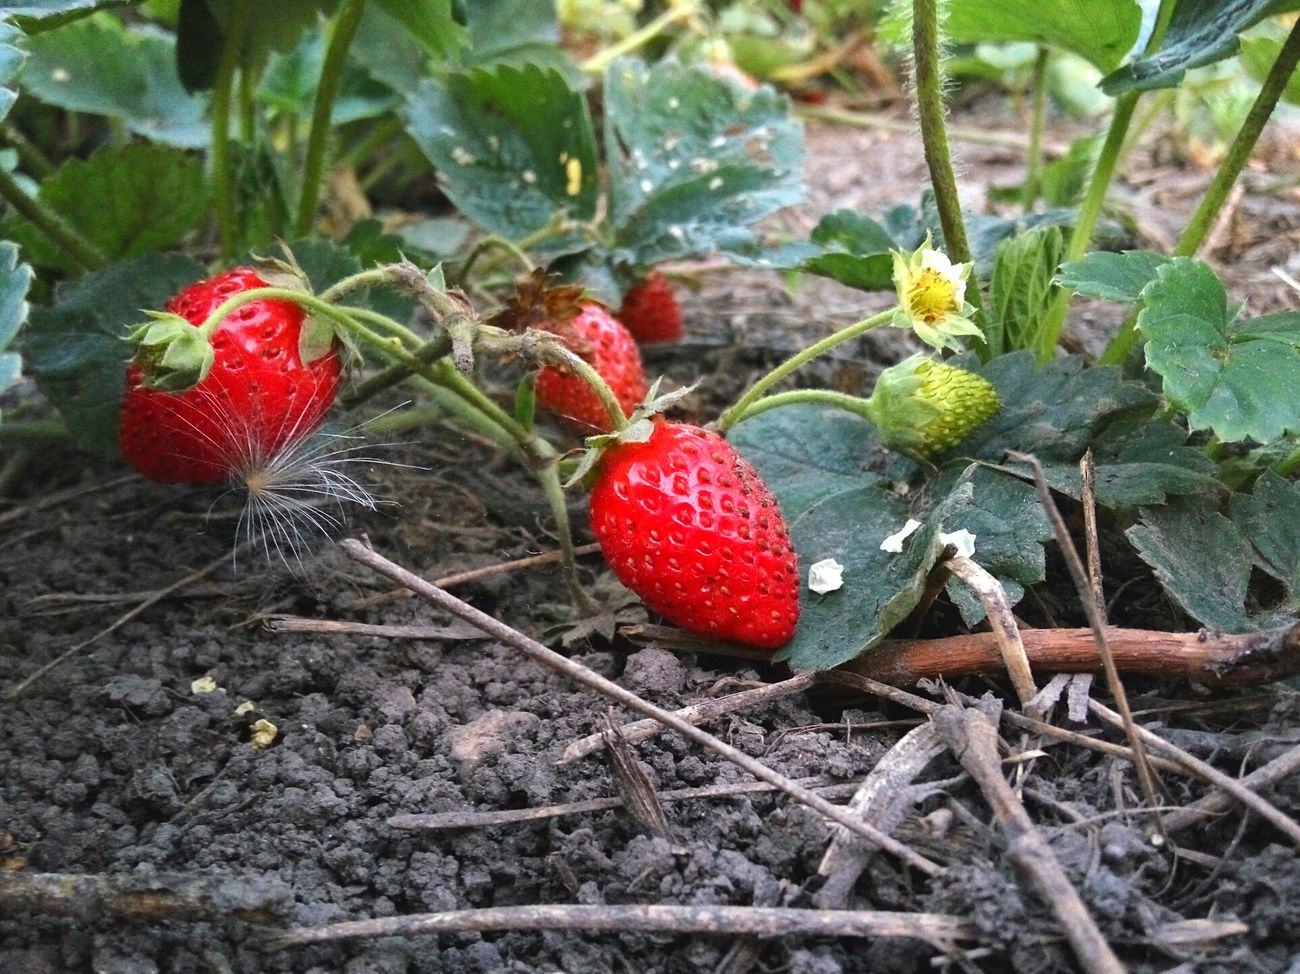 Fresh delicious strawberries growing now. Plant Nature Red Day Outdoors Beauty In Nature Green Color Ukraine Strawberries Fruits Fresh Fresh On Eyeem  Delicious Tasty Vegetarian Food Healthy Growing Food